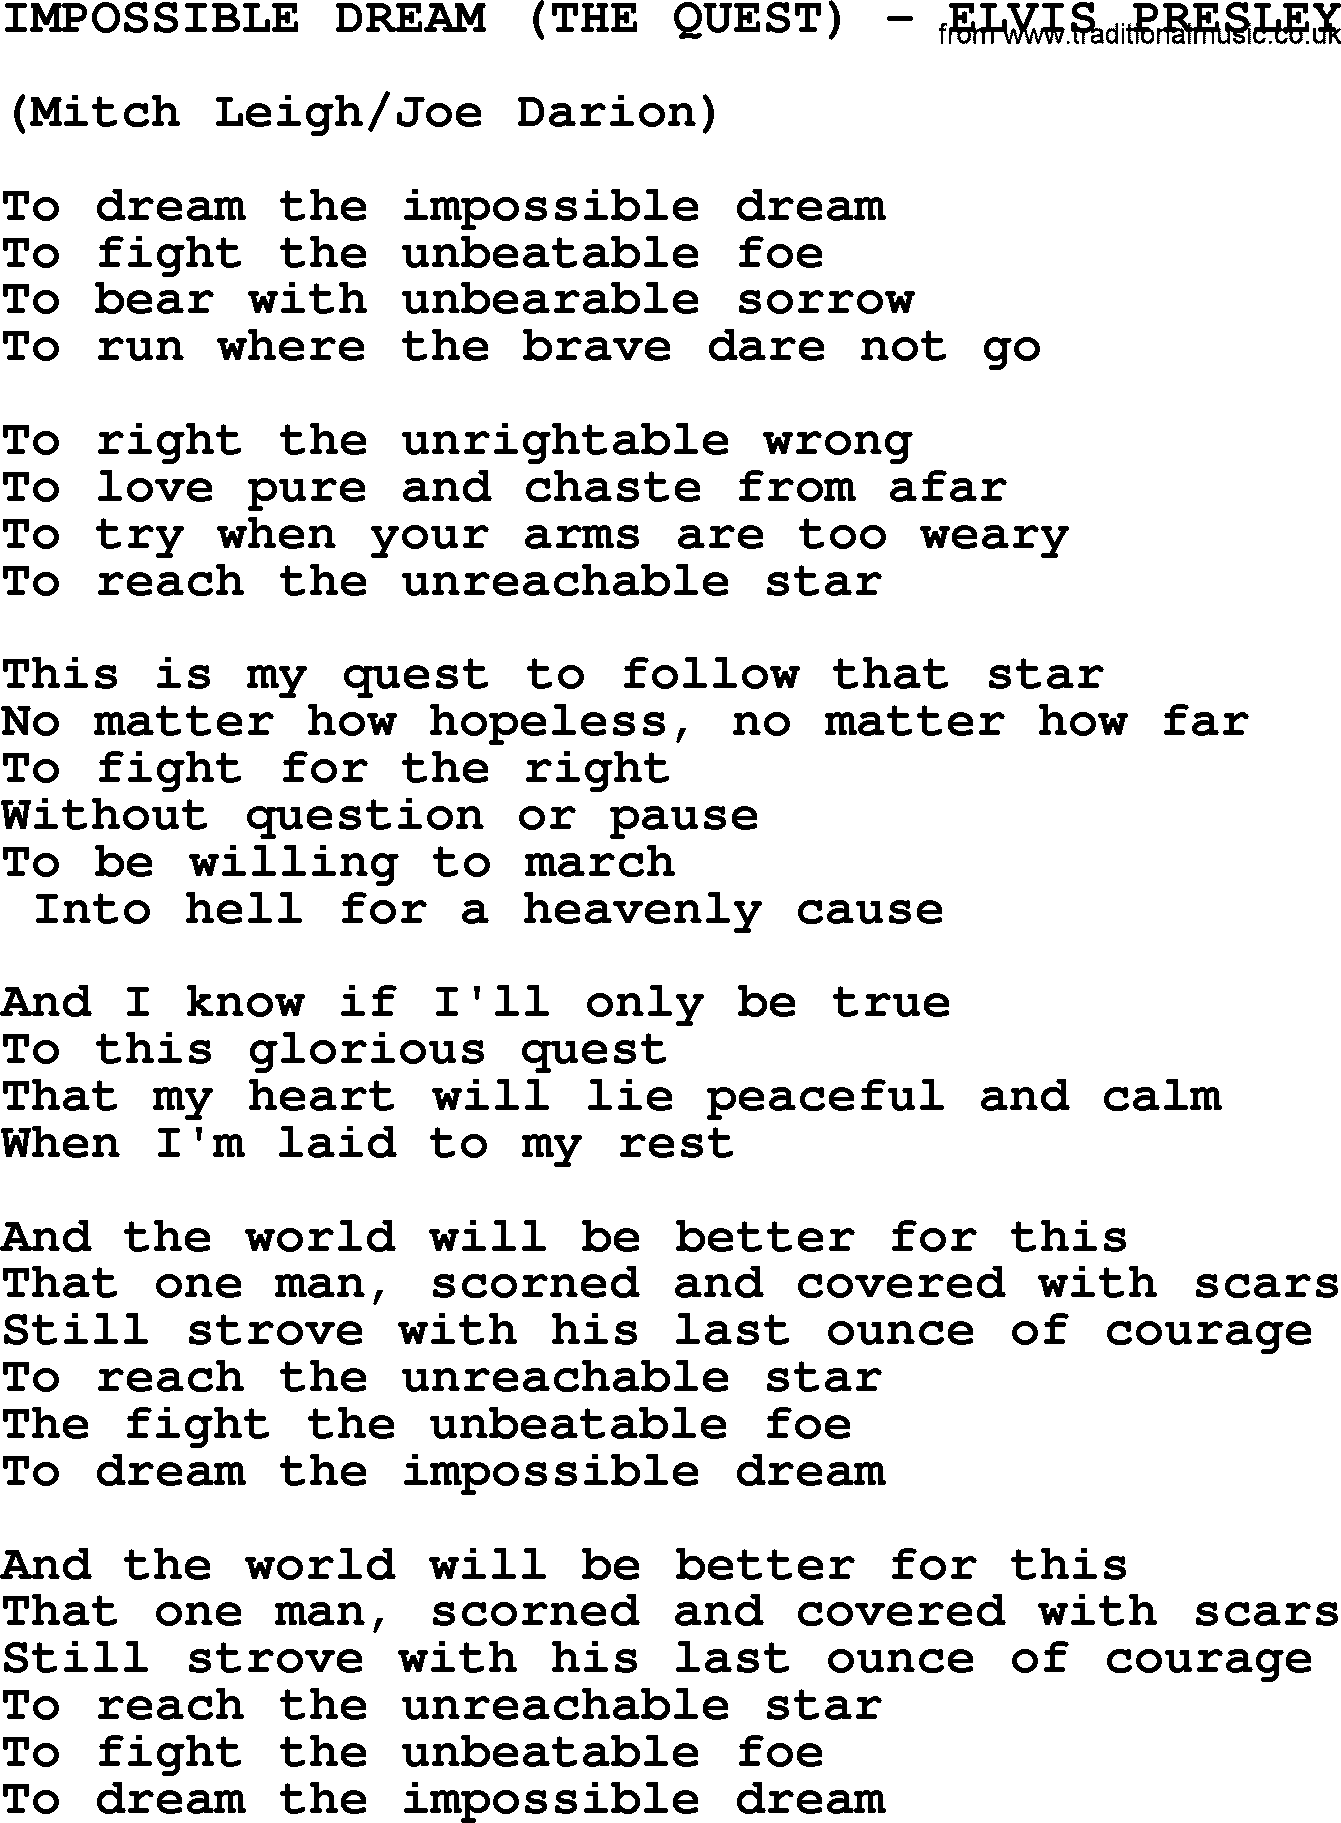 Impossible Dream The QuestElvis Presleytxt By Elvis Presley - Impossible poem